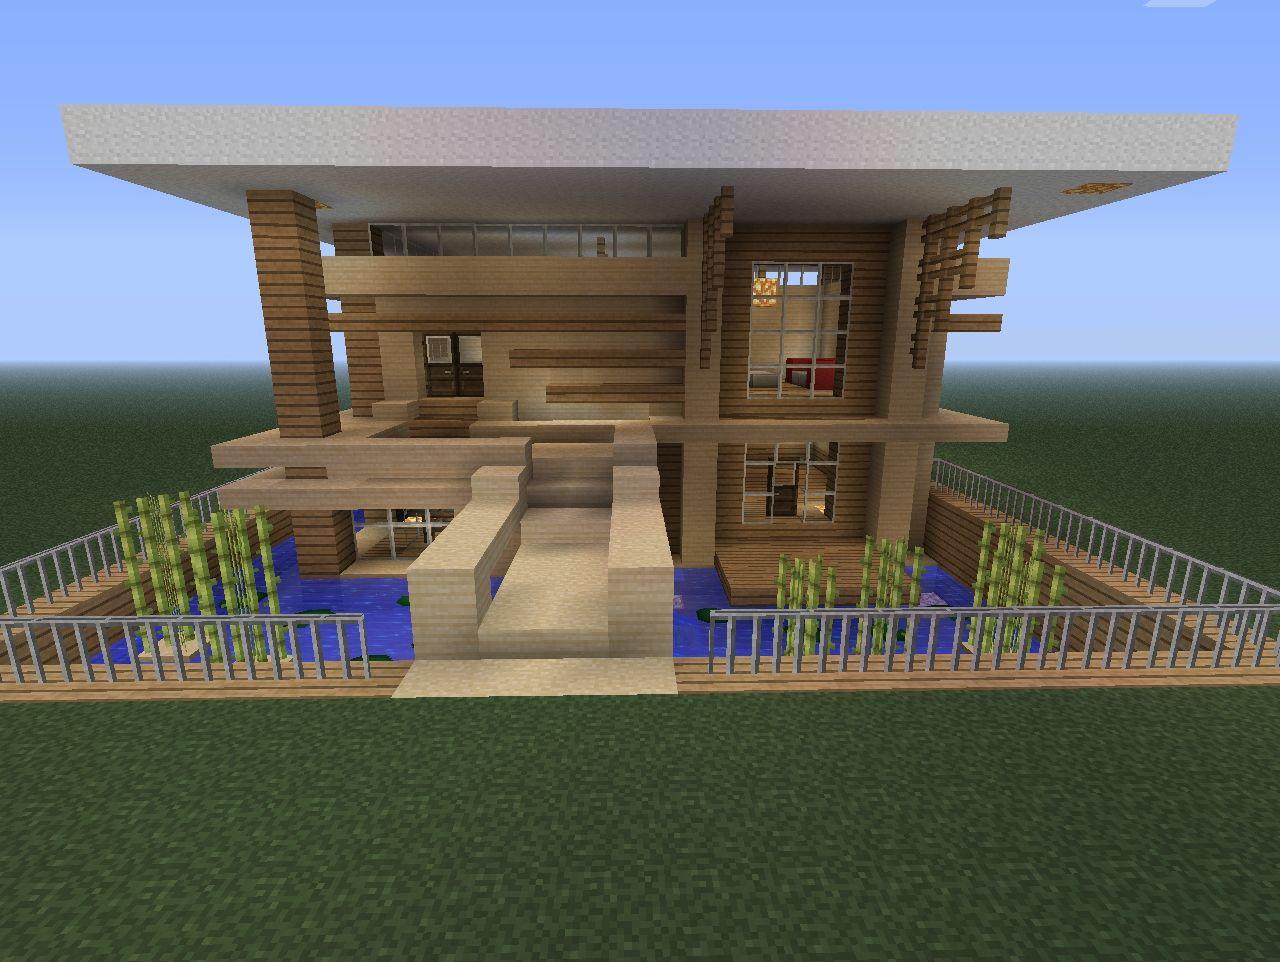 1000 images about minecraft on pinterest minecraft